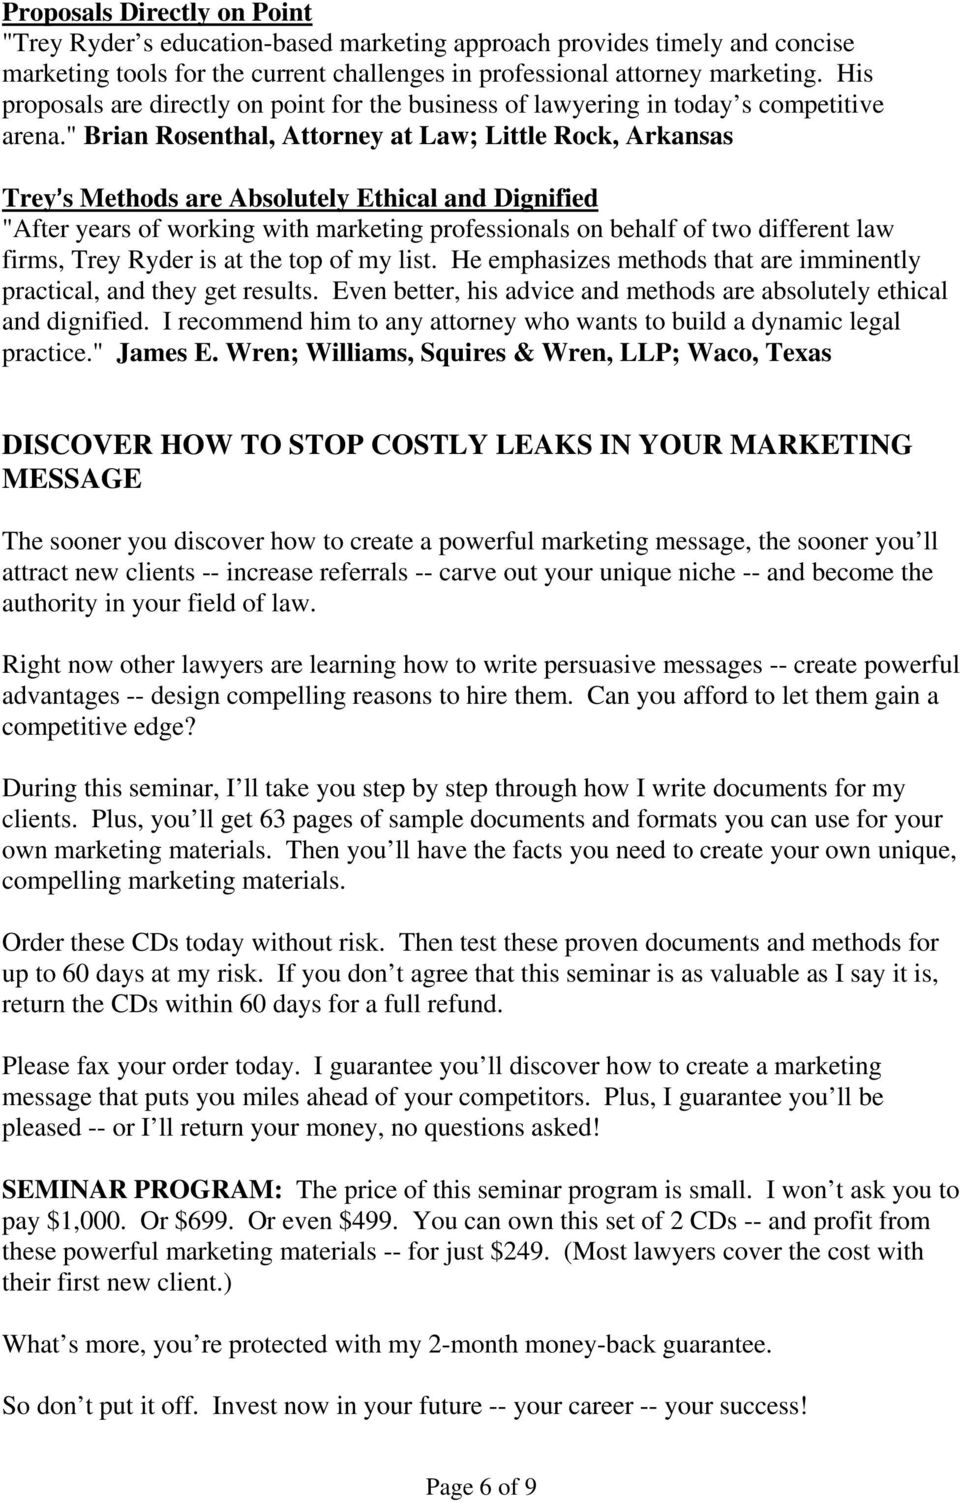 """ Brian Rosenthal, Attorney at Law; Little Rock, Arkansas Trey=s Methods are Absolutely Ethical and Dignified ""After years of working with marketing professionals on behalf of two different law"